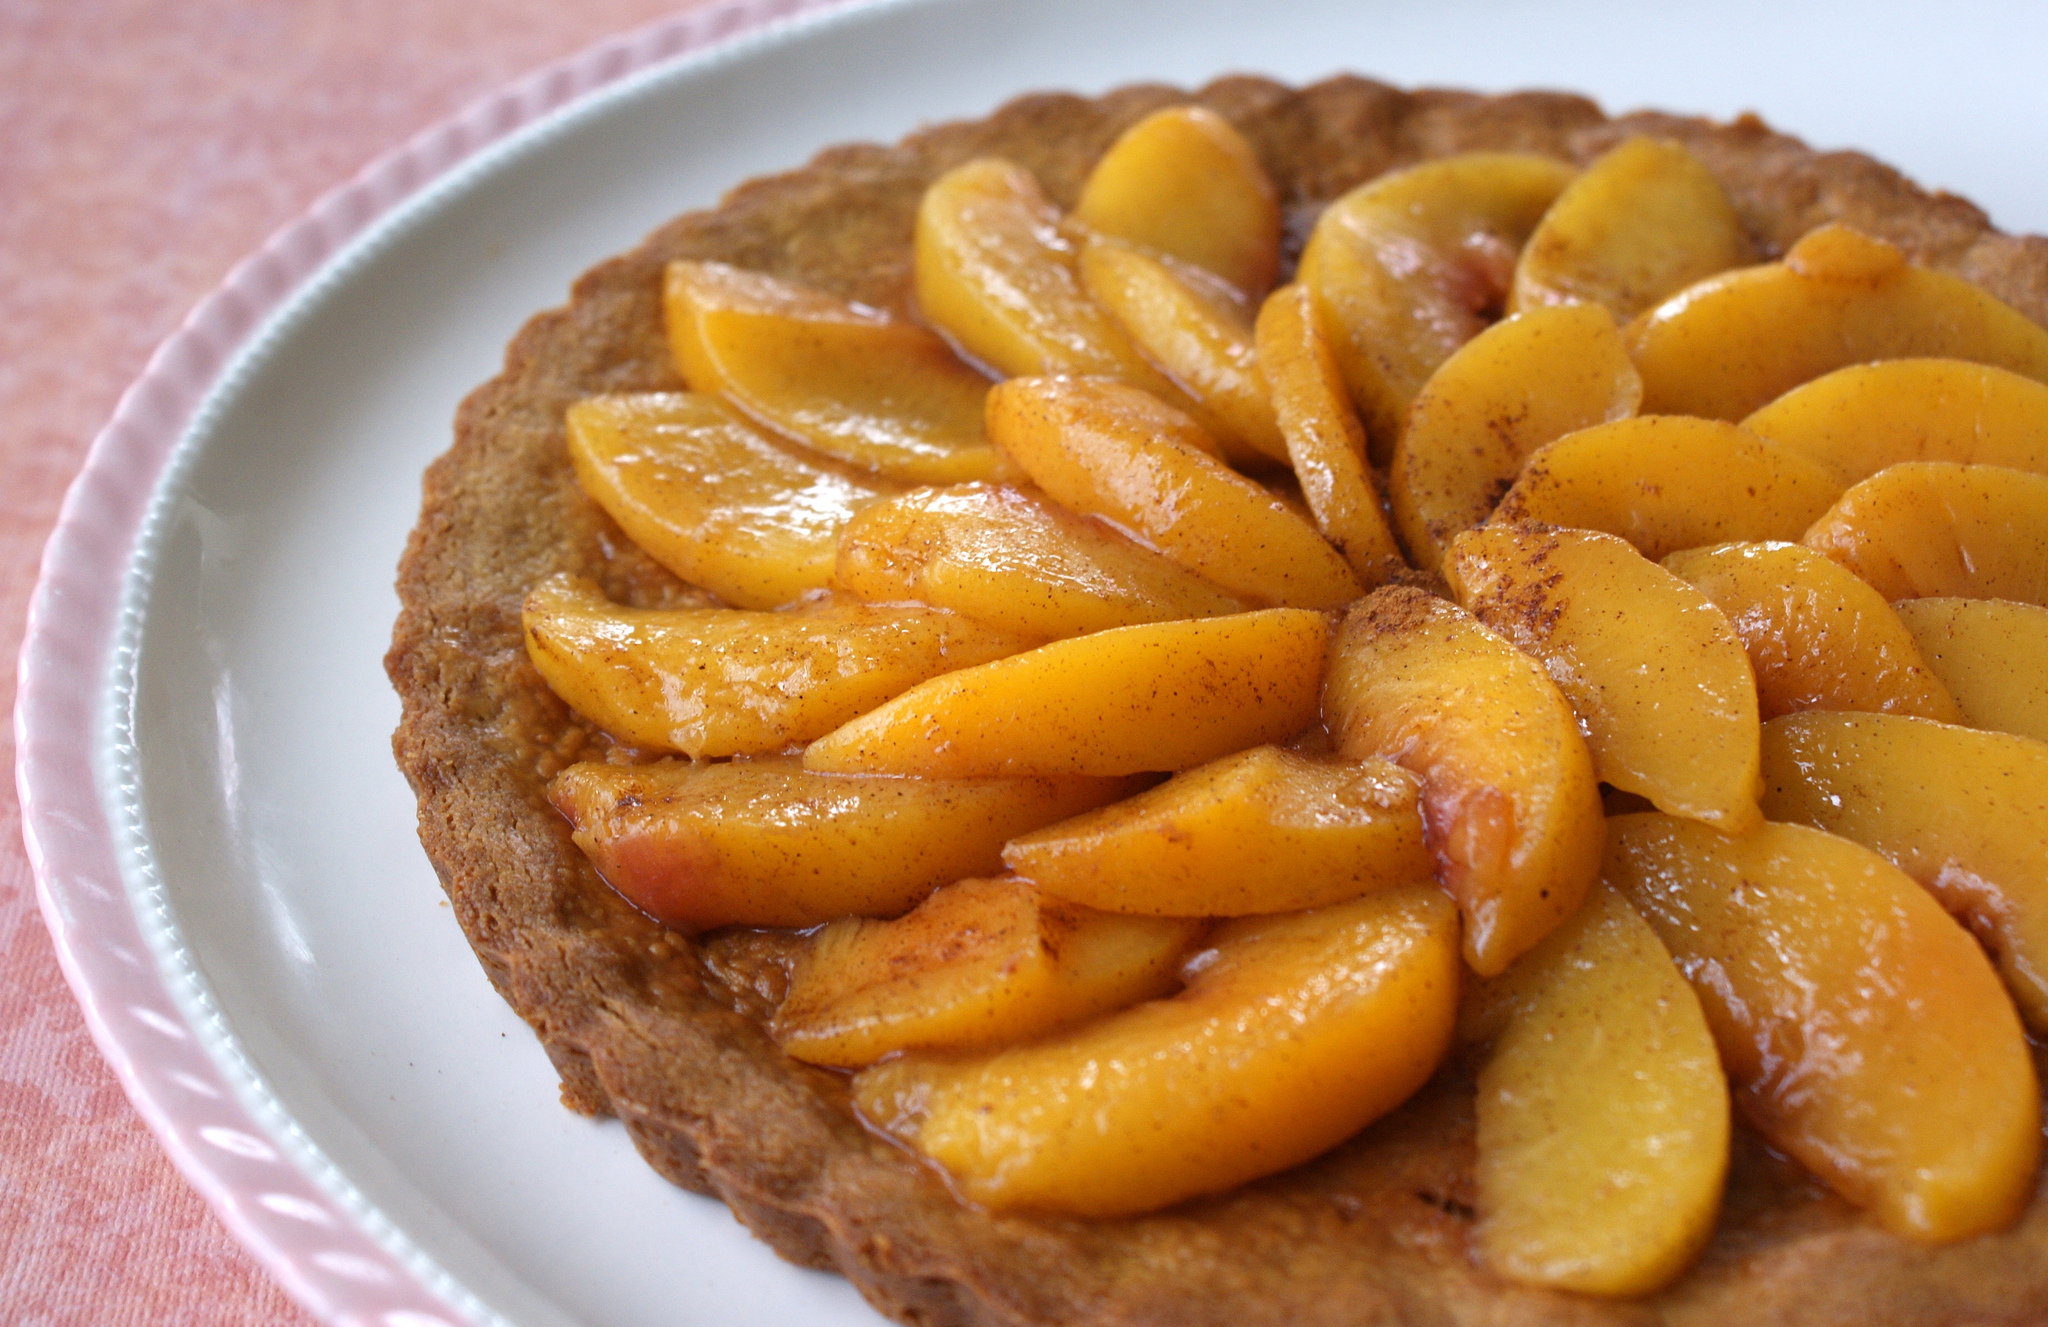 Homemade peach tart on a white plate